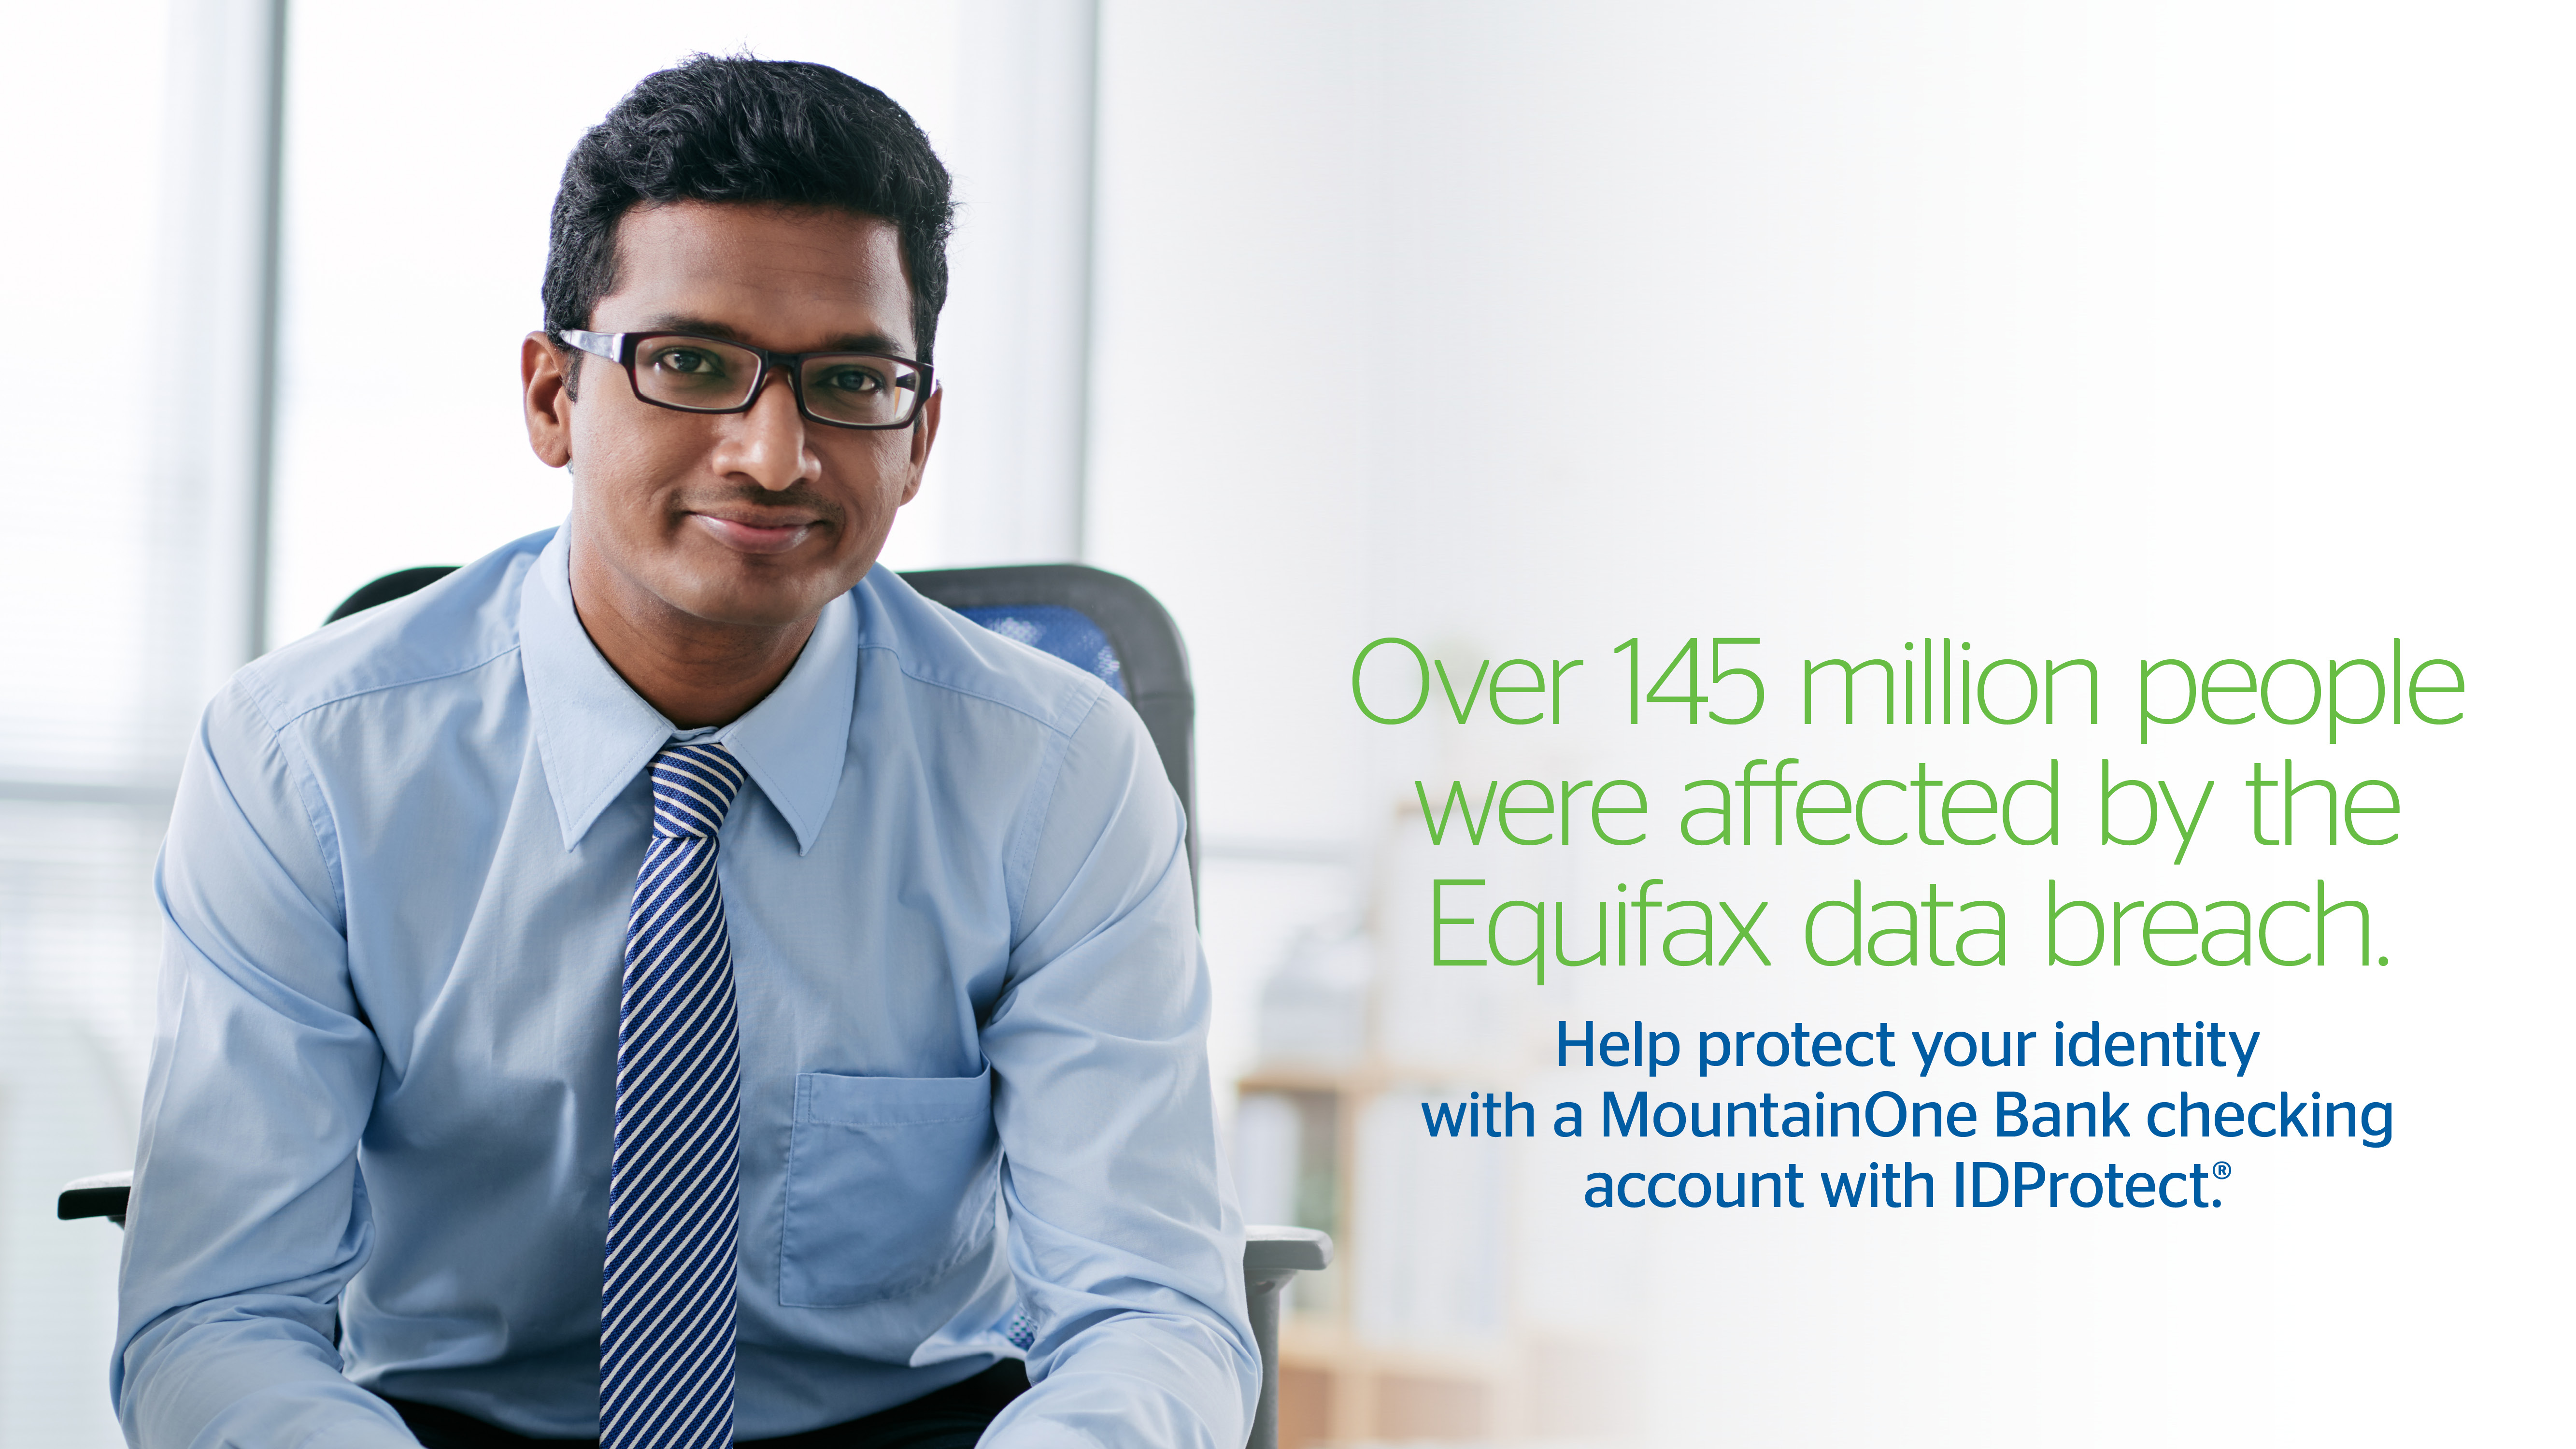 Help protect your identity with a MountainOne Bank checking account with IDProtect.